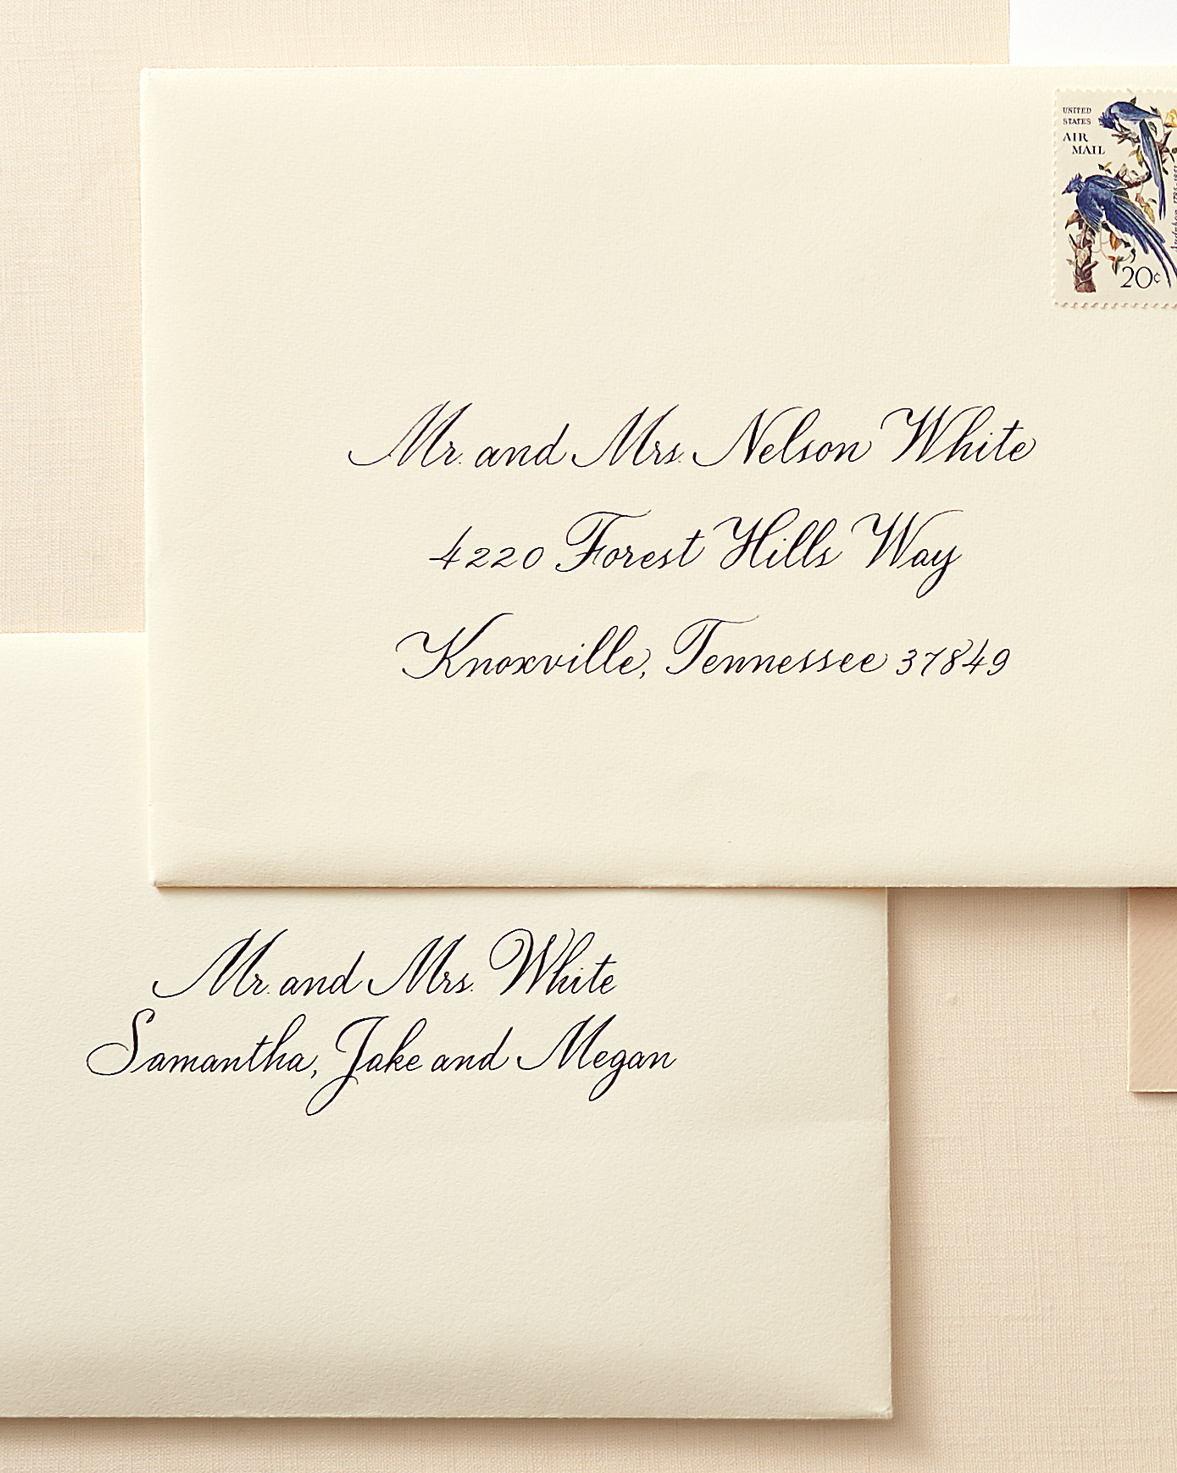 envelope-wording-mwd110839-family-1014.jpg